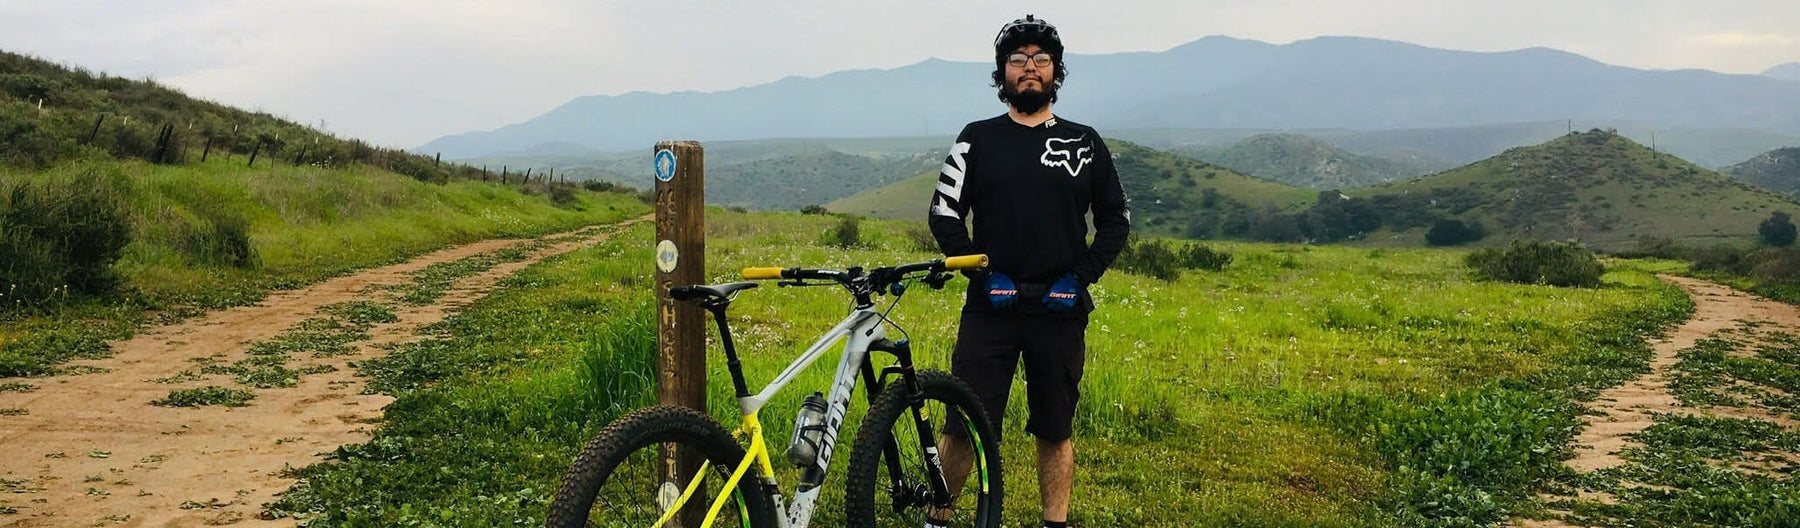 Meet Juan from our Chula Vista Store One of Our Bike & Gear Experts